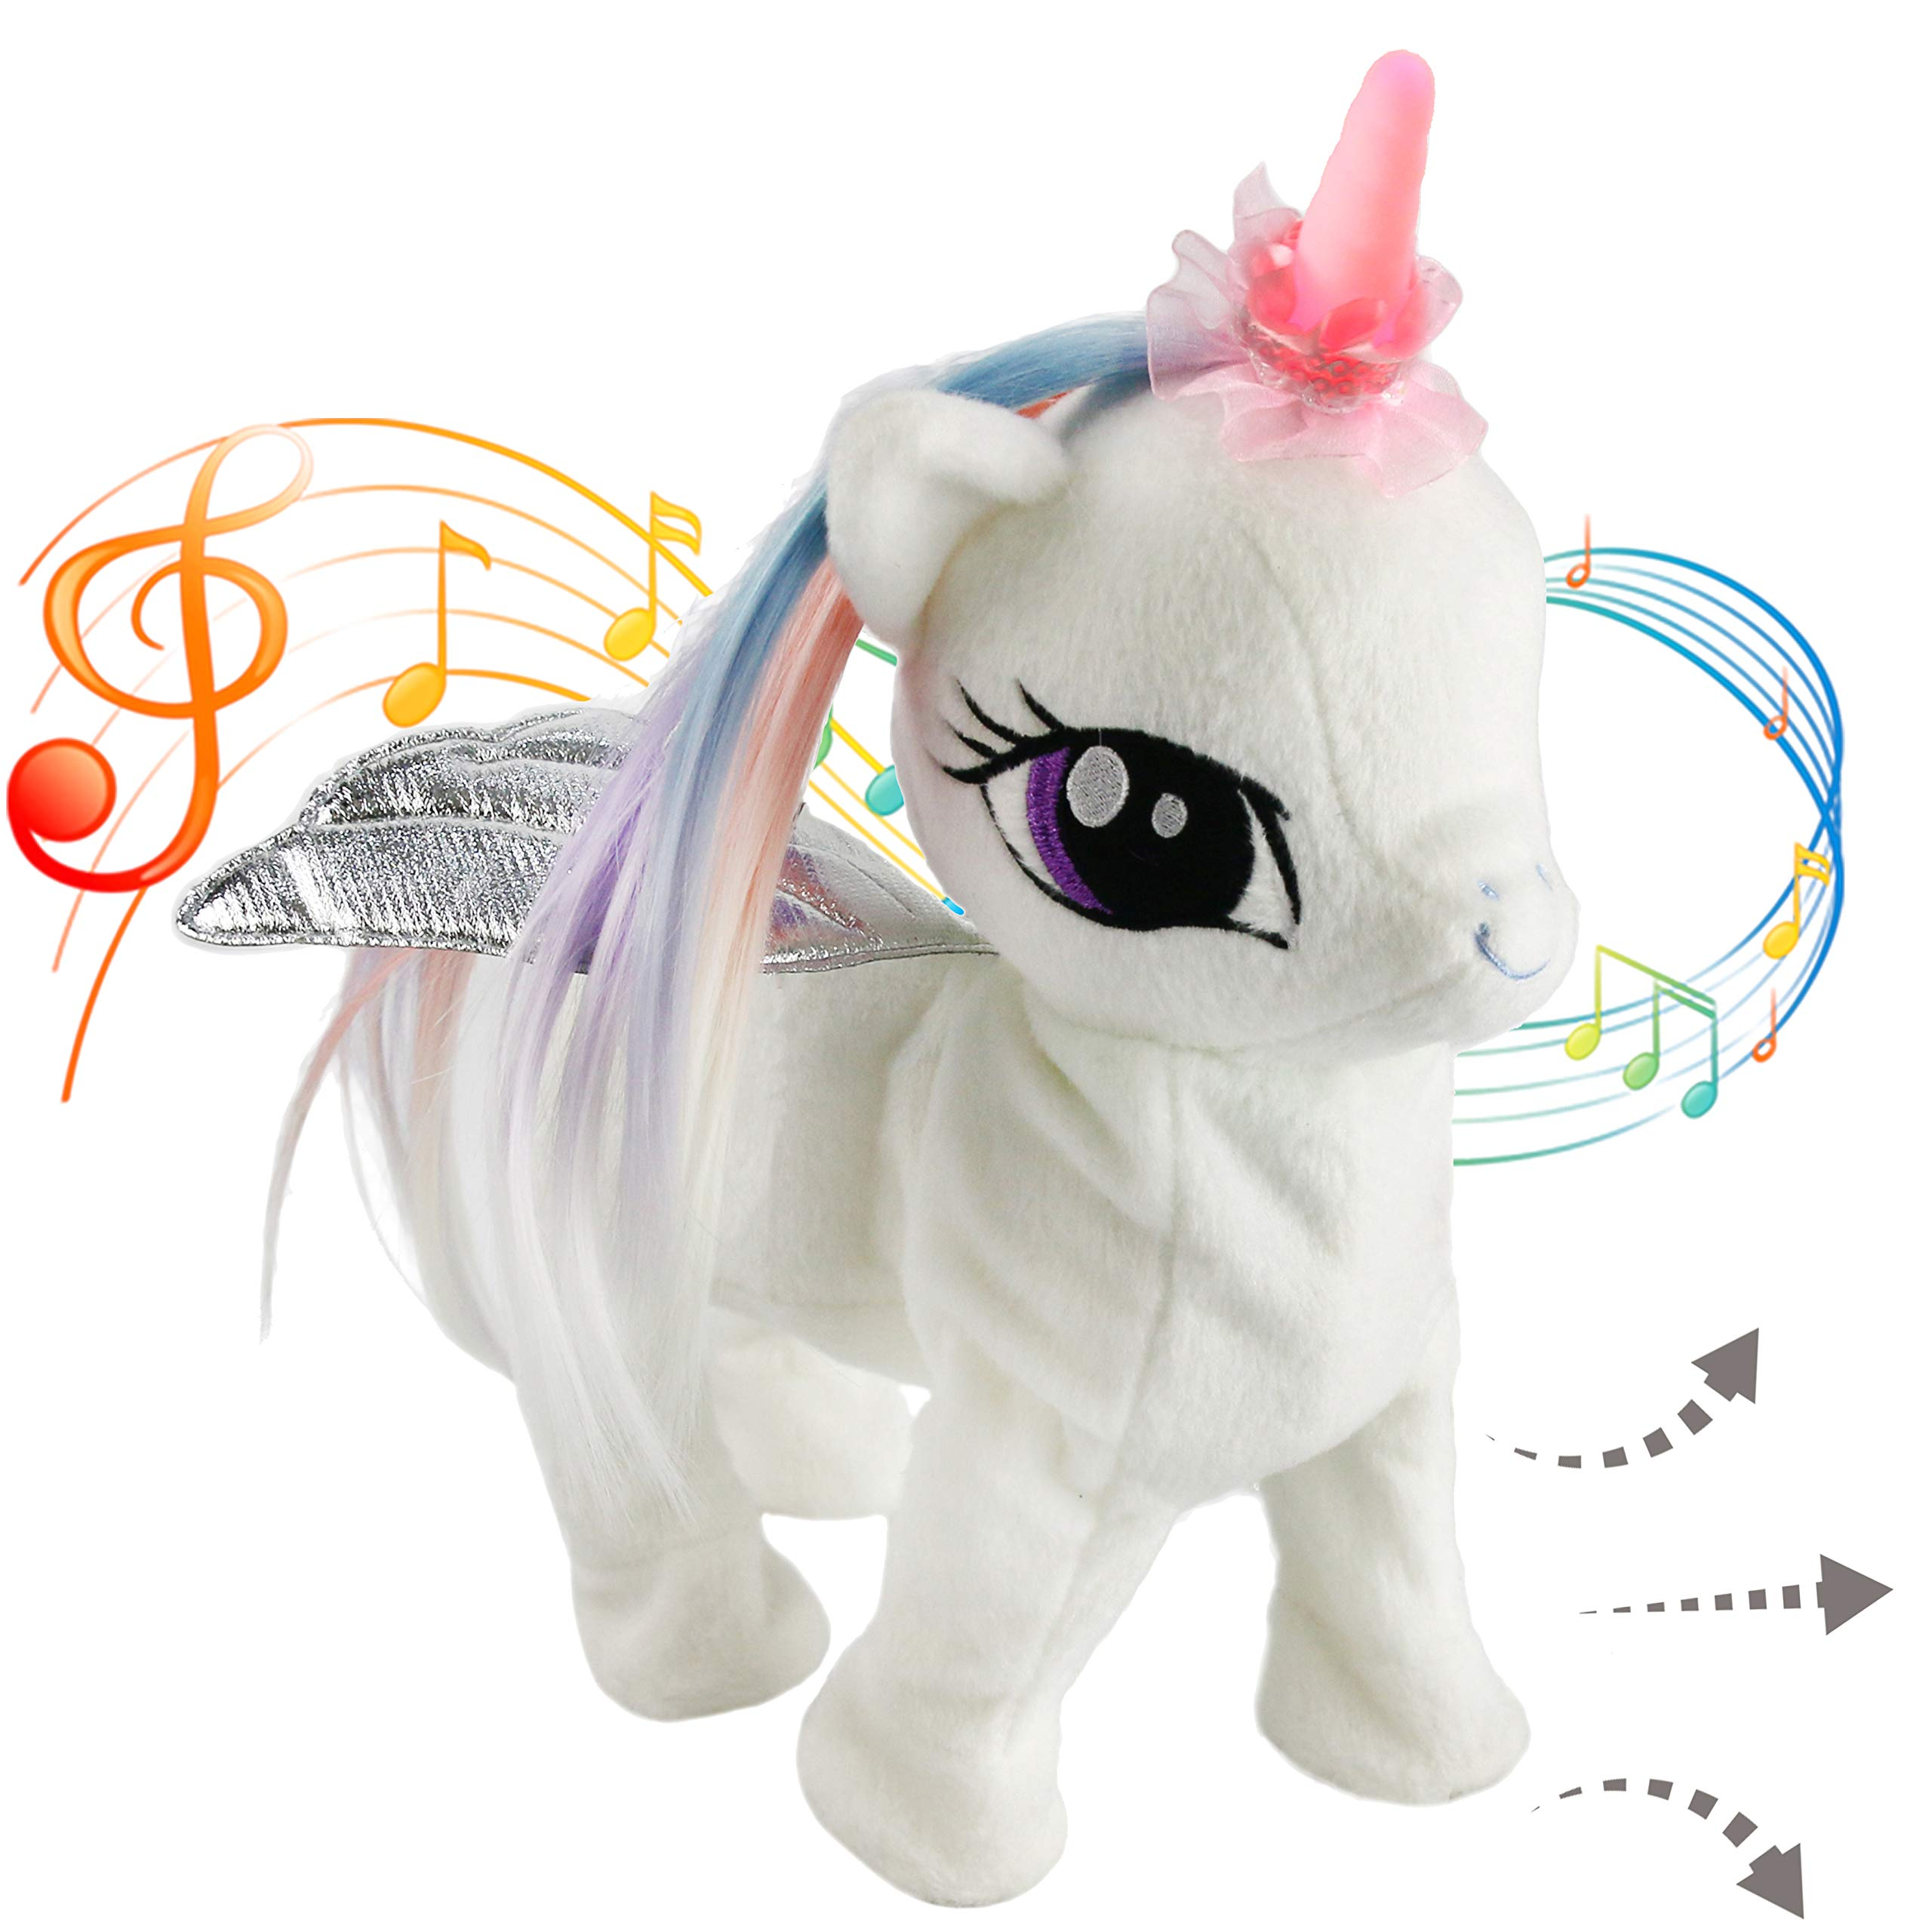 Houwsbaby Musical Unicorn Electronic Toys Interactive Night Light Horn Animated Stuffed Animal Pegasus Plush Singing Walking Gift for Toddlers Kids, 13 inches, White by Houwsbaby